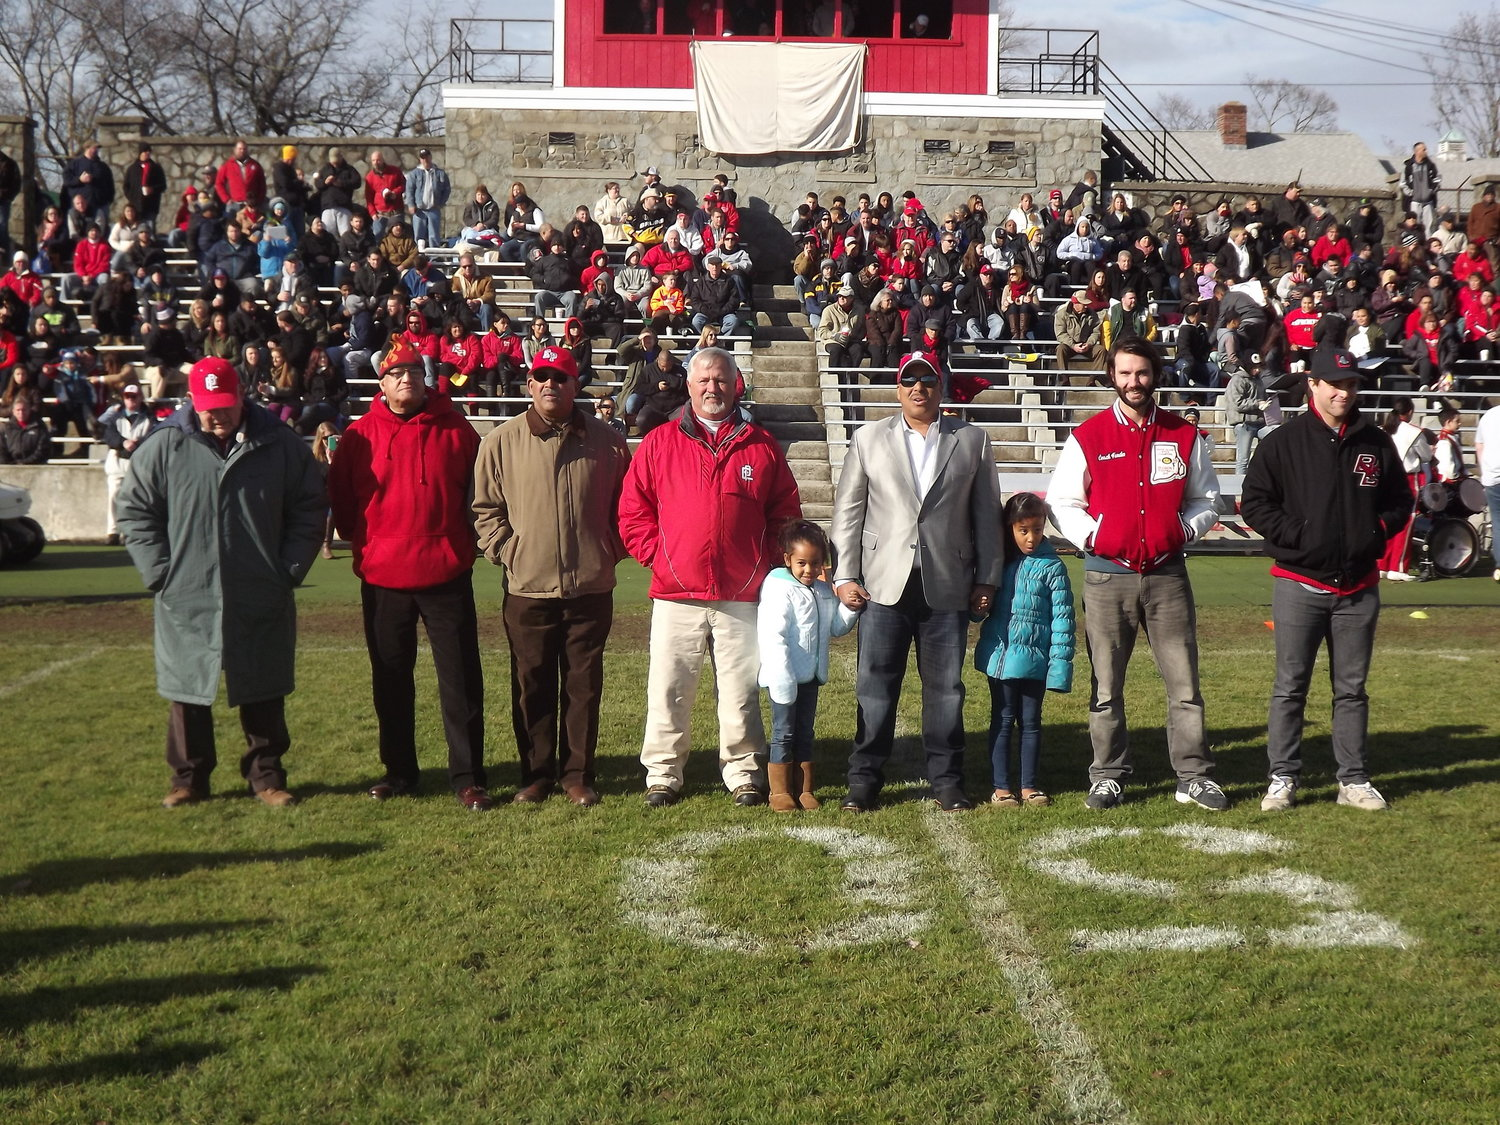 Representing 7 decades of Townie football from the 1940s to 2000s L to R, Bill Stringfellow, Harry Edmonds, Junior Butler, Jim Rose, Matt Lopes, Joe Wahl and Jaime Silva